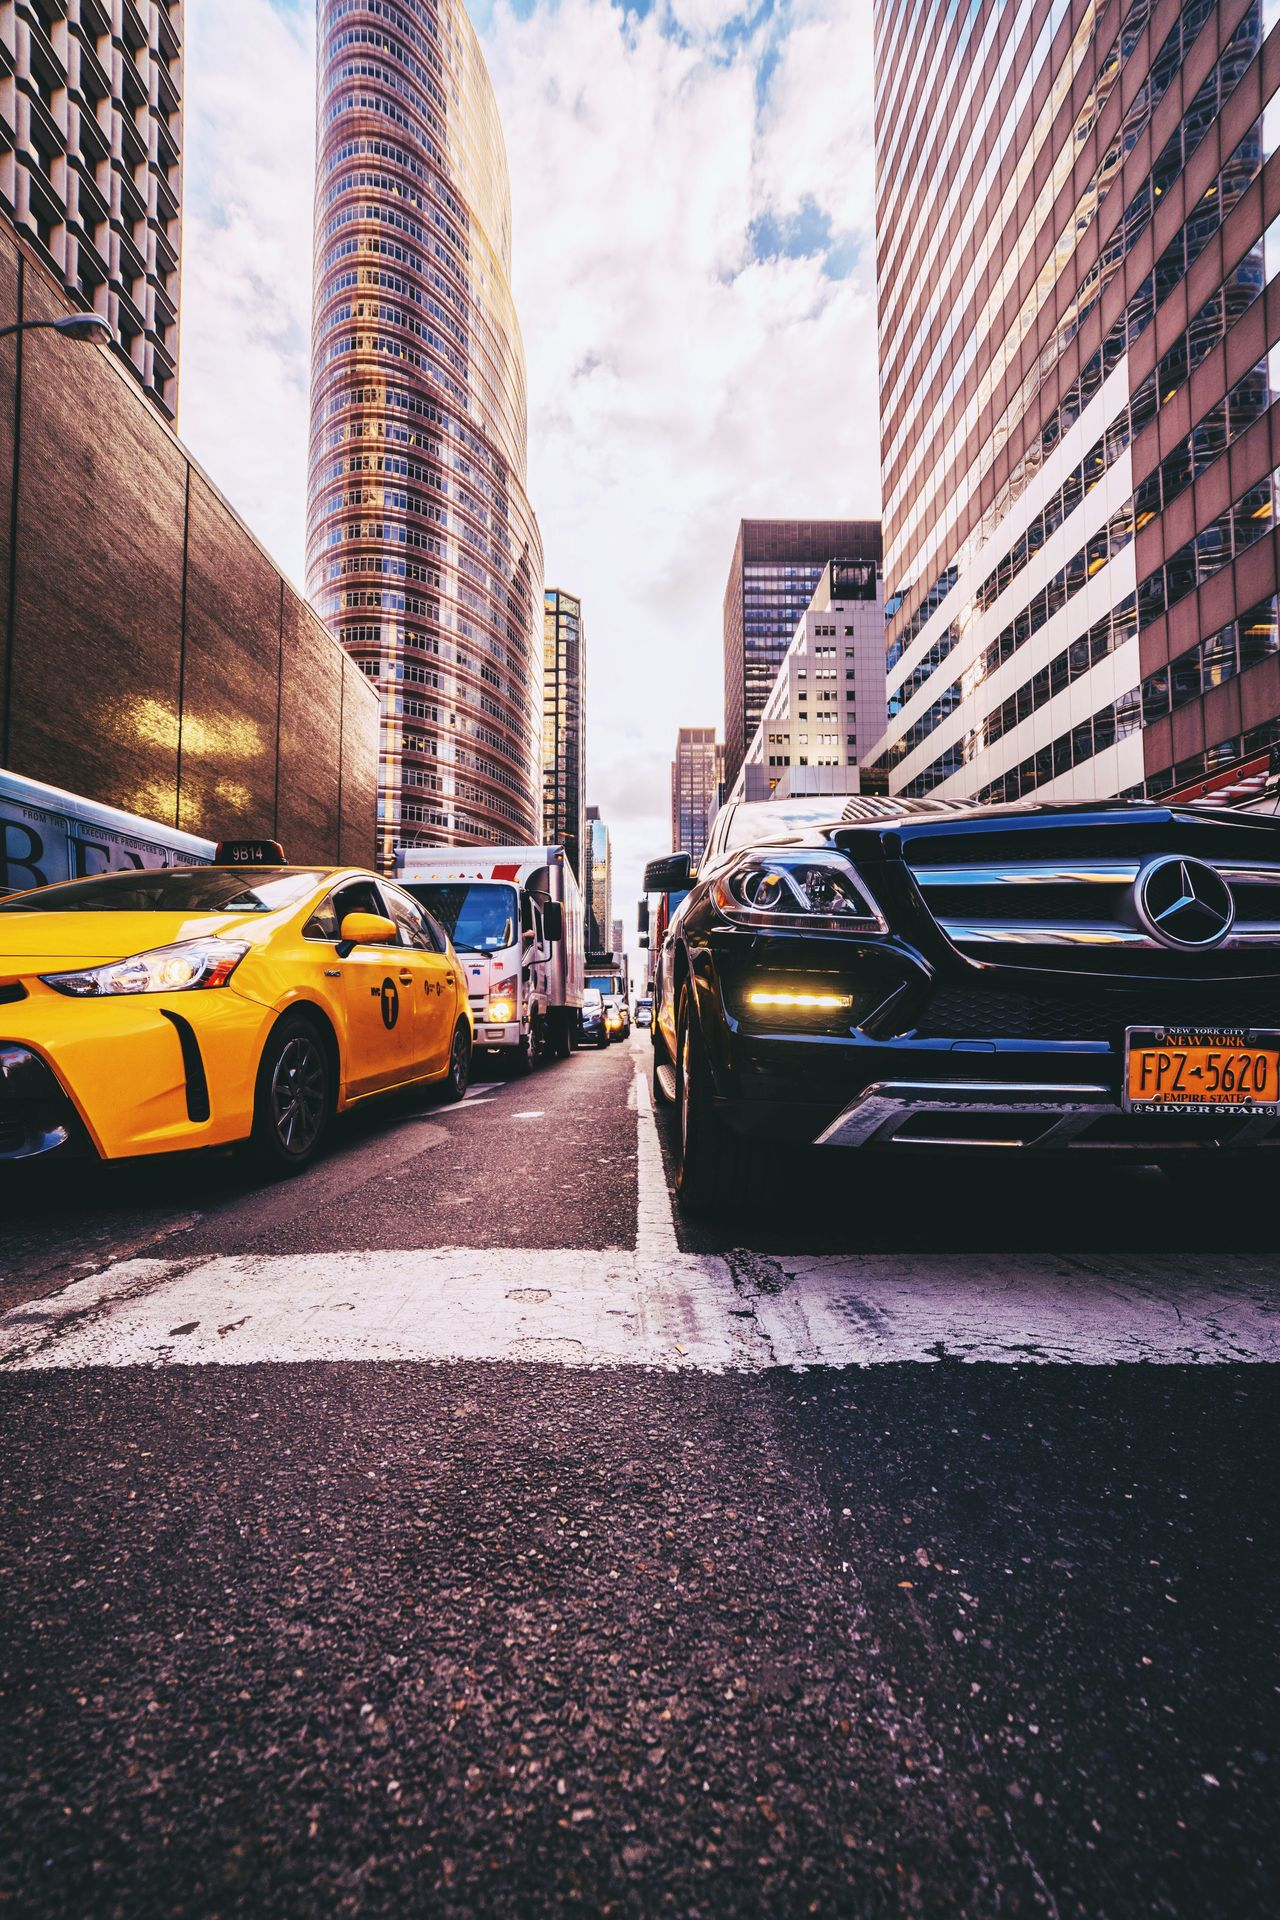 Came out to play. City Car Yellow Taxi Taxi Skyscraper Transportation Traffic City Life Yellow Building Exterior Architecture Road Cityscape No People Outdoors Day Sky NYC Street City Cityscape NYC Photography Travel Destinations Architecture Built Structure